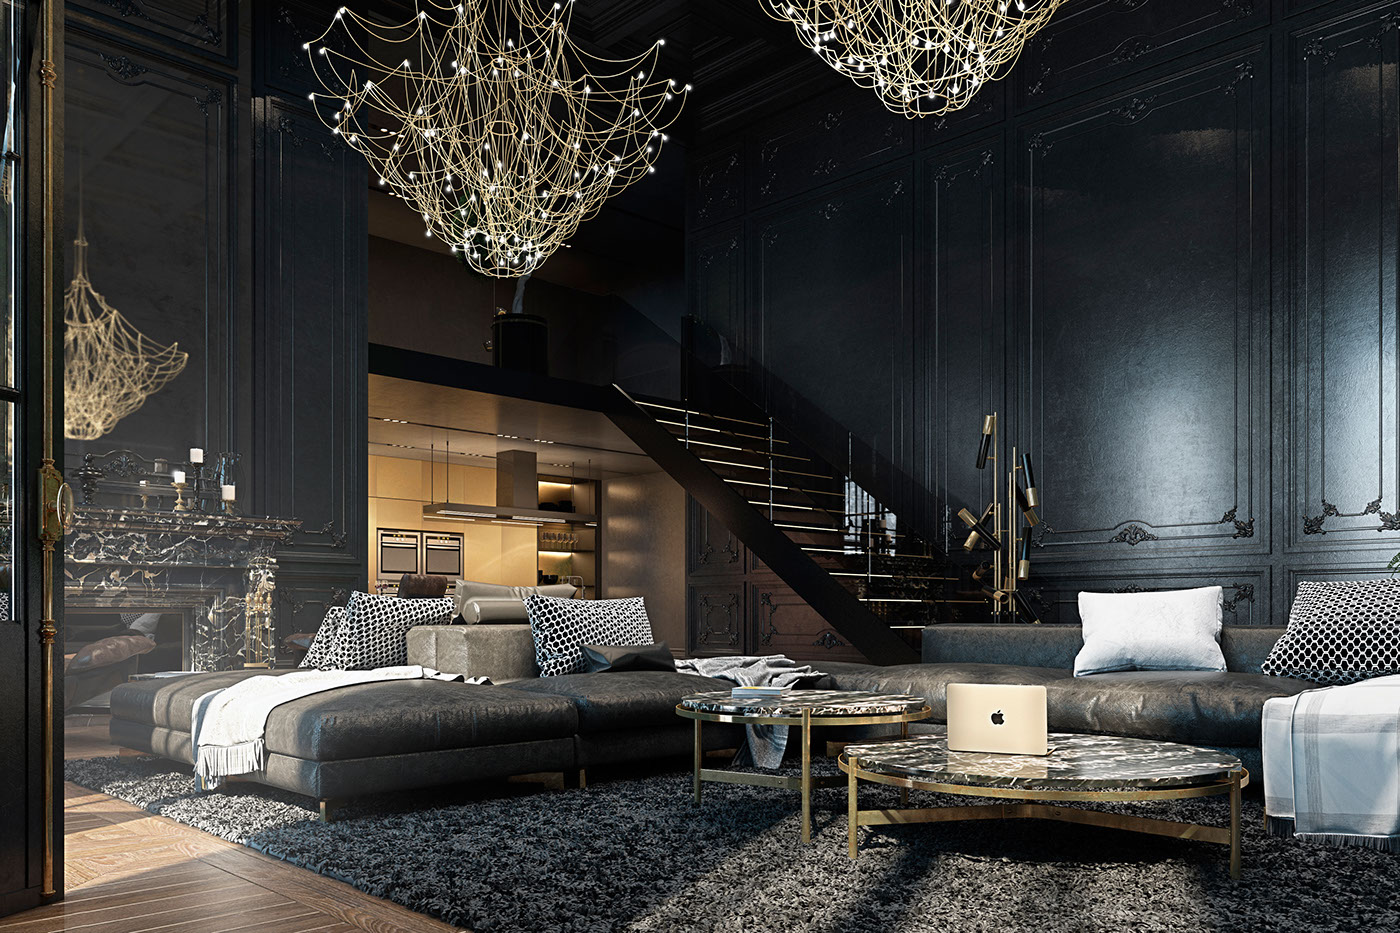 New Trends The Best Black Interior Design Spaces 2 new trends New Trends: The Best Black Interior Design Spaces New Trends The Best Black Interior Design Spaces 2